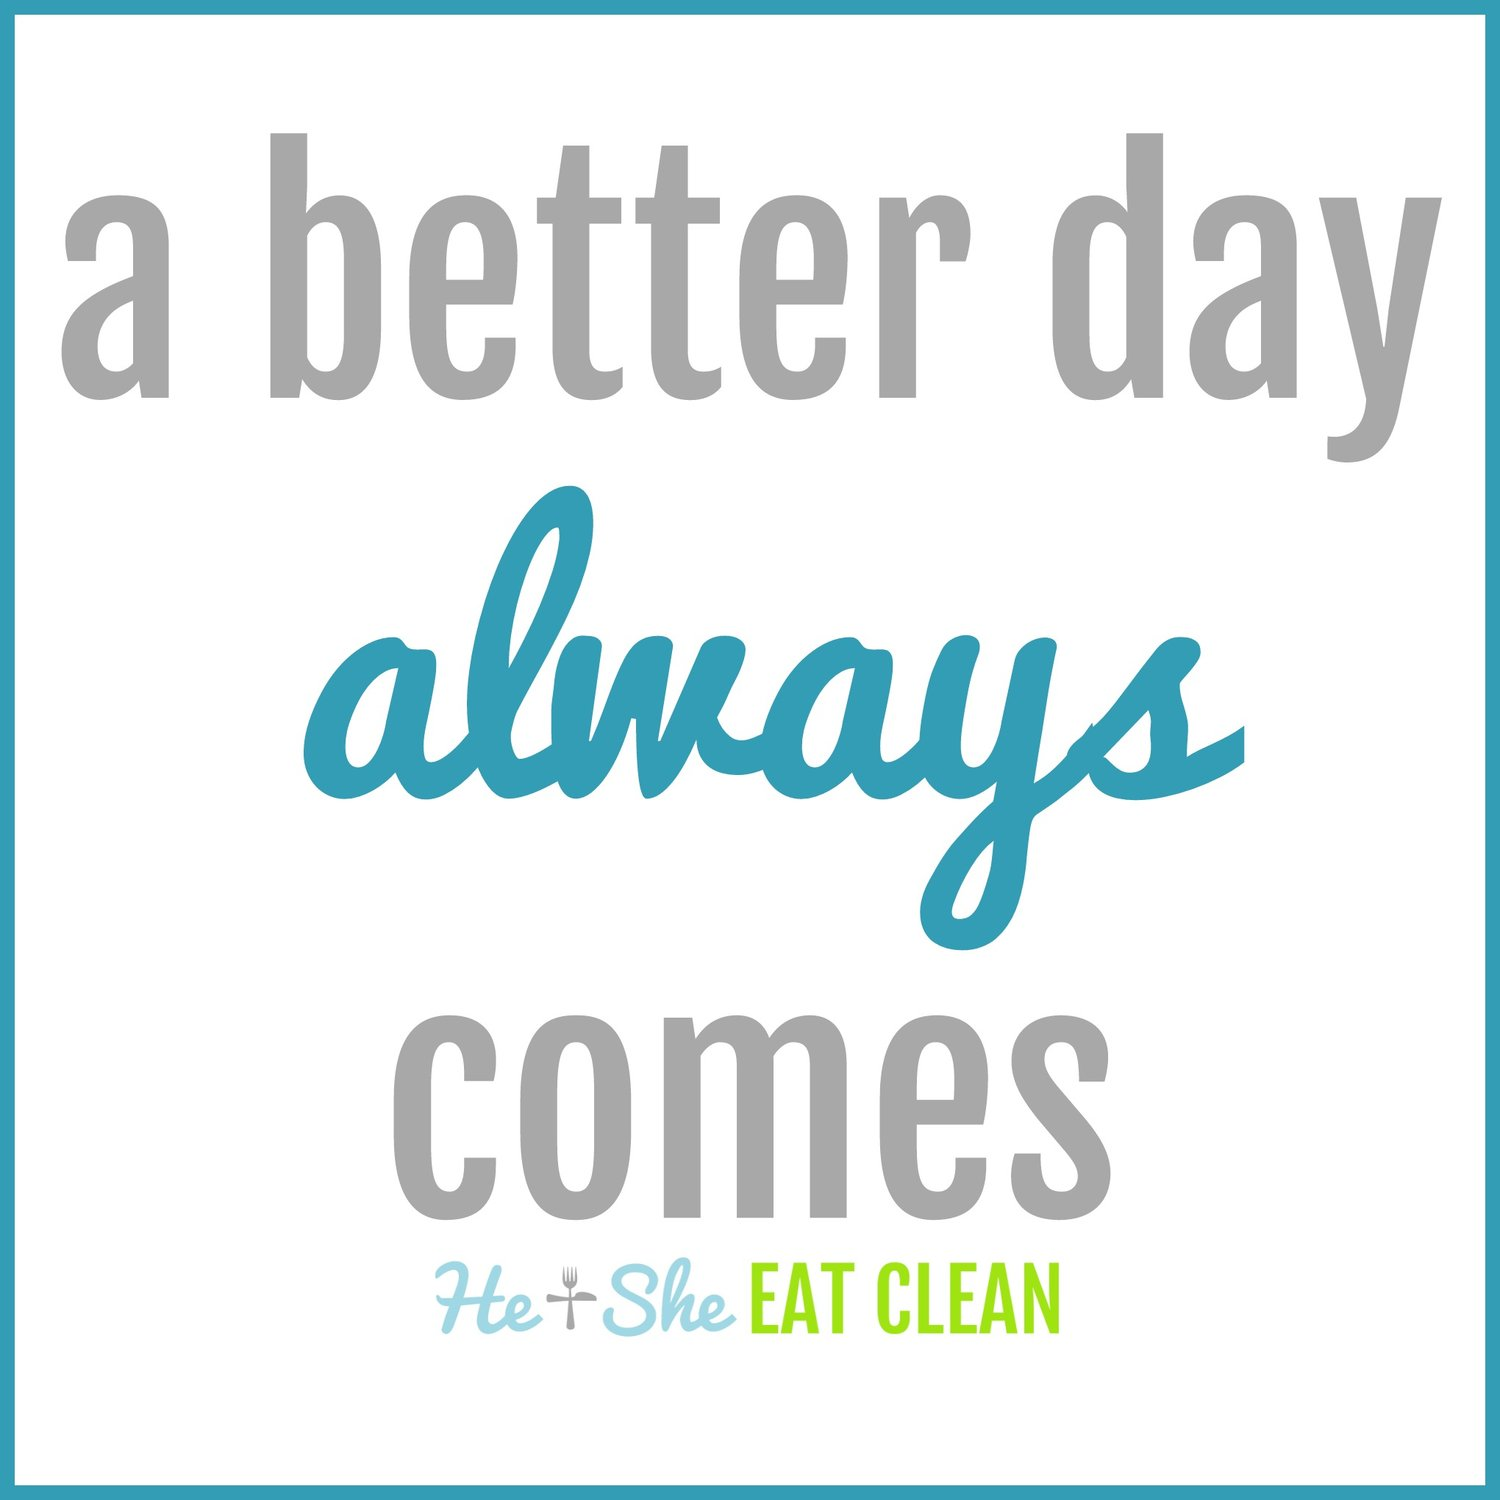 a-better-day-always-comes-he-and-she-eat-clean-wallpaper-wp5203653